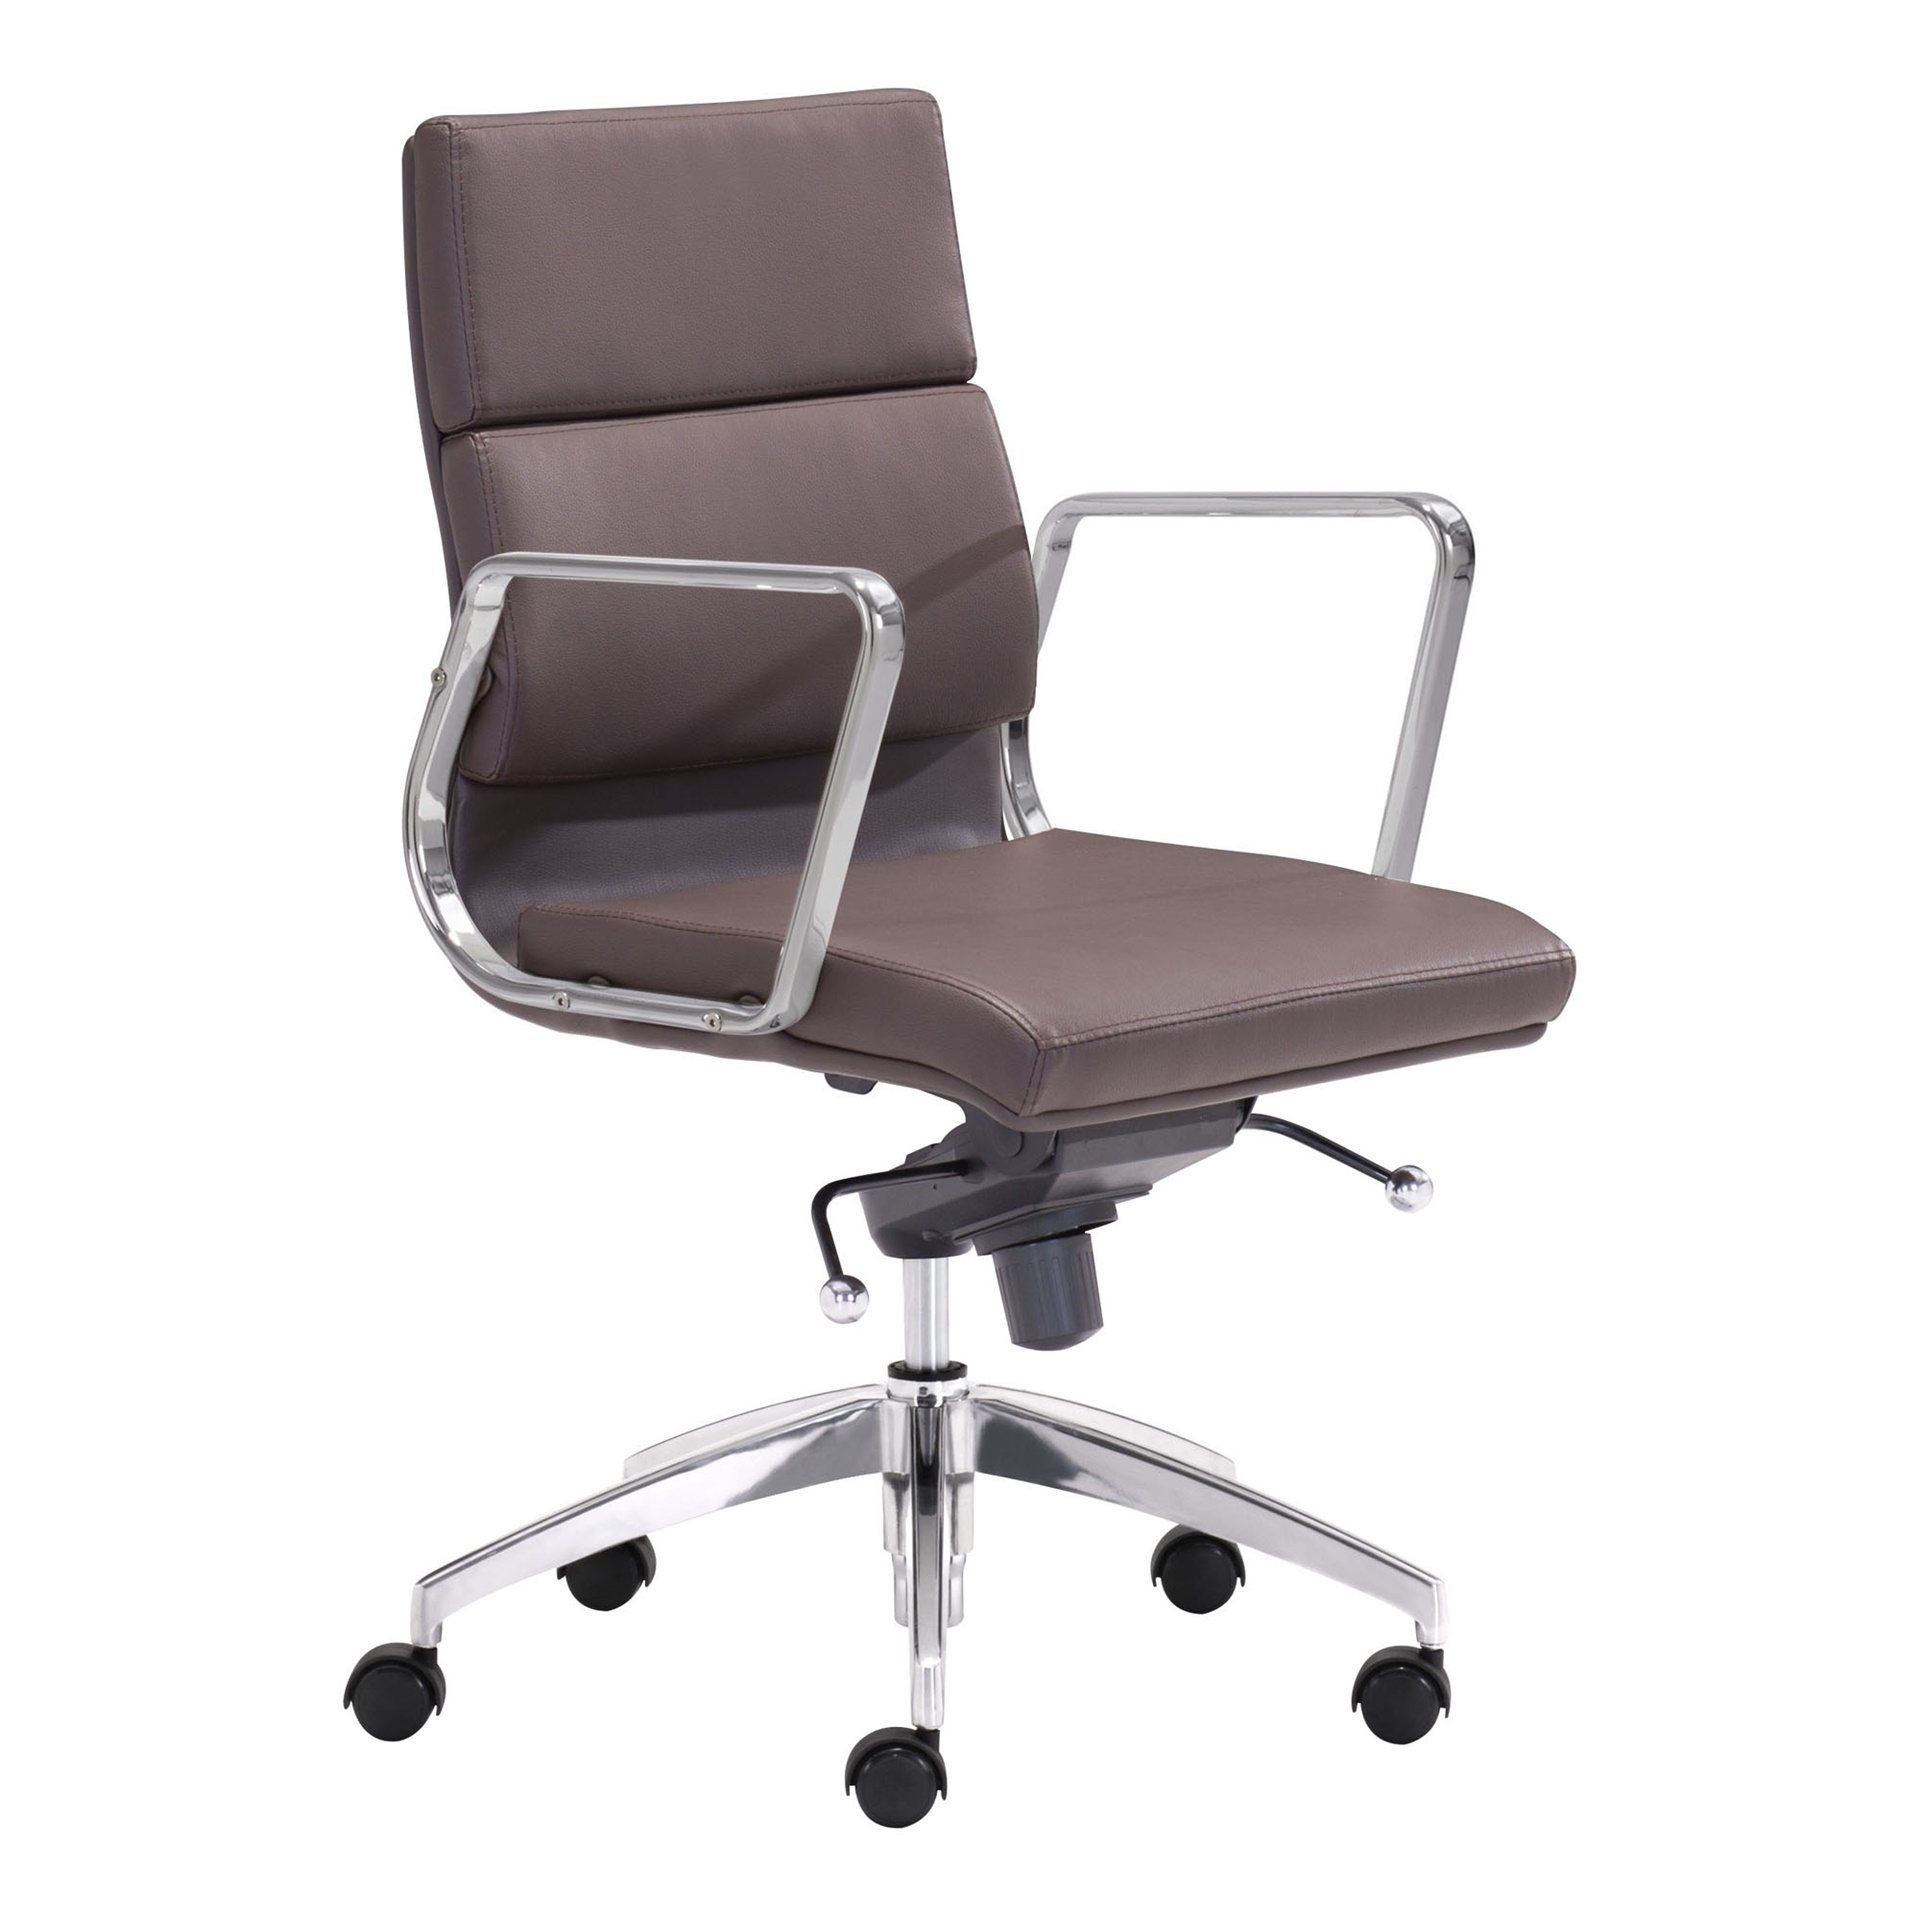 sc 1 st  Inmod & Engineer Low Back Office Chair